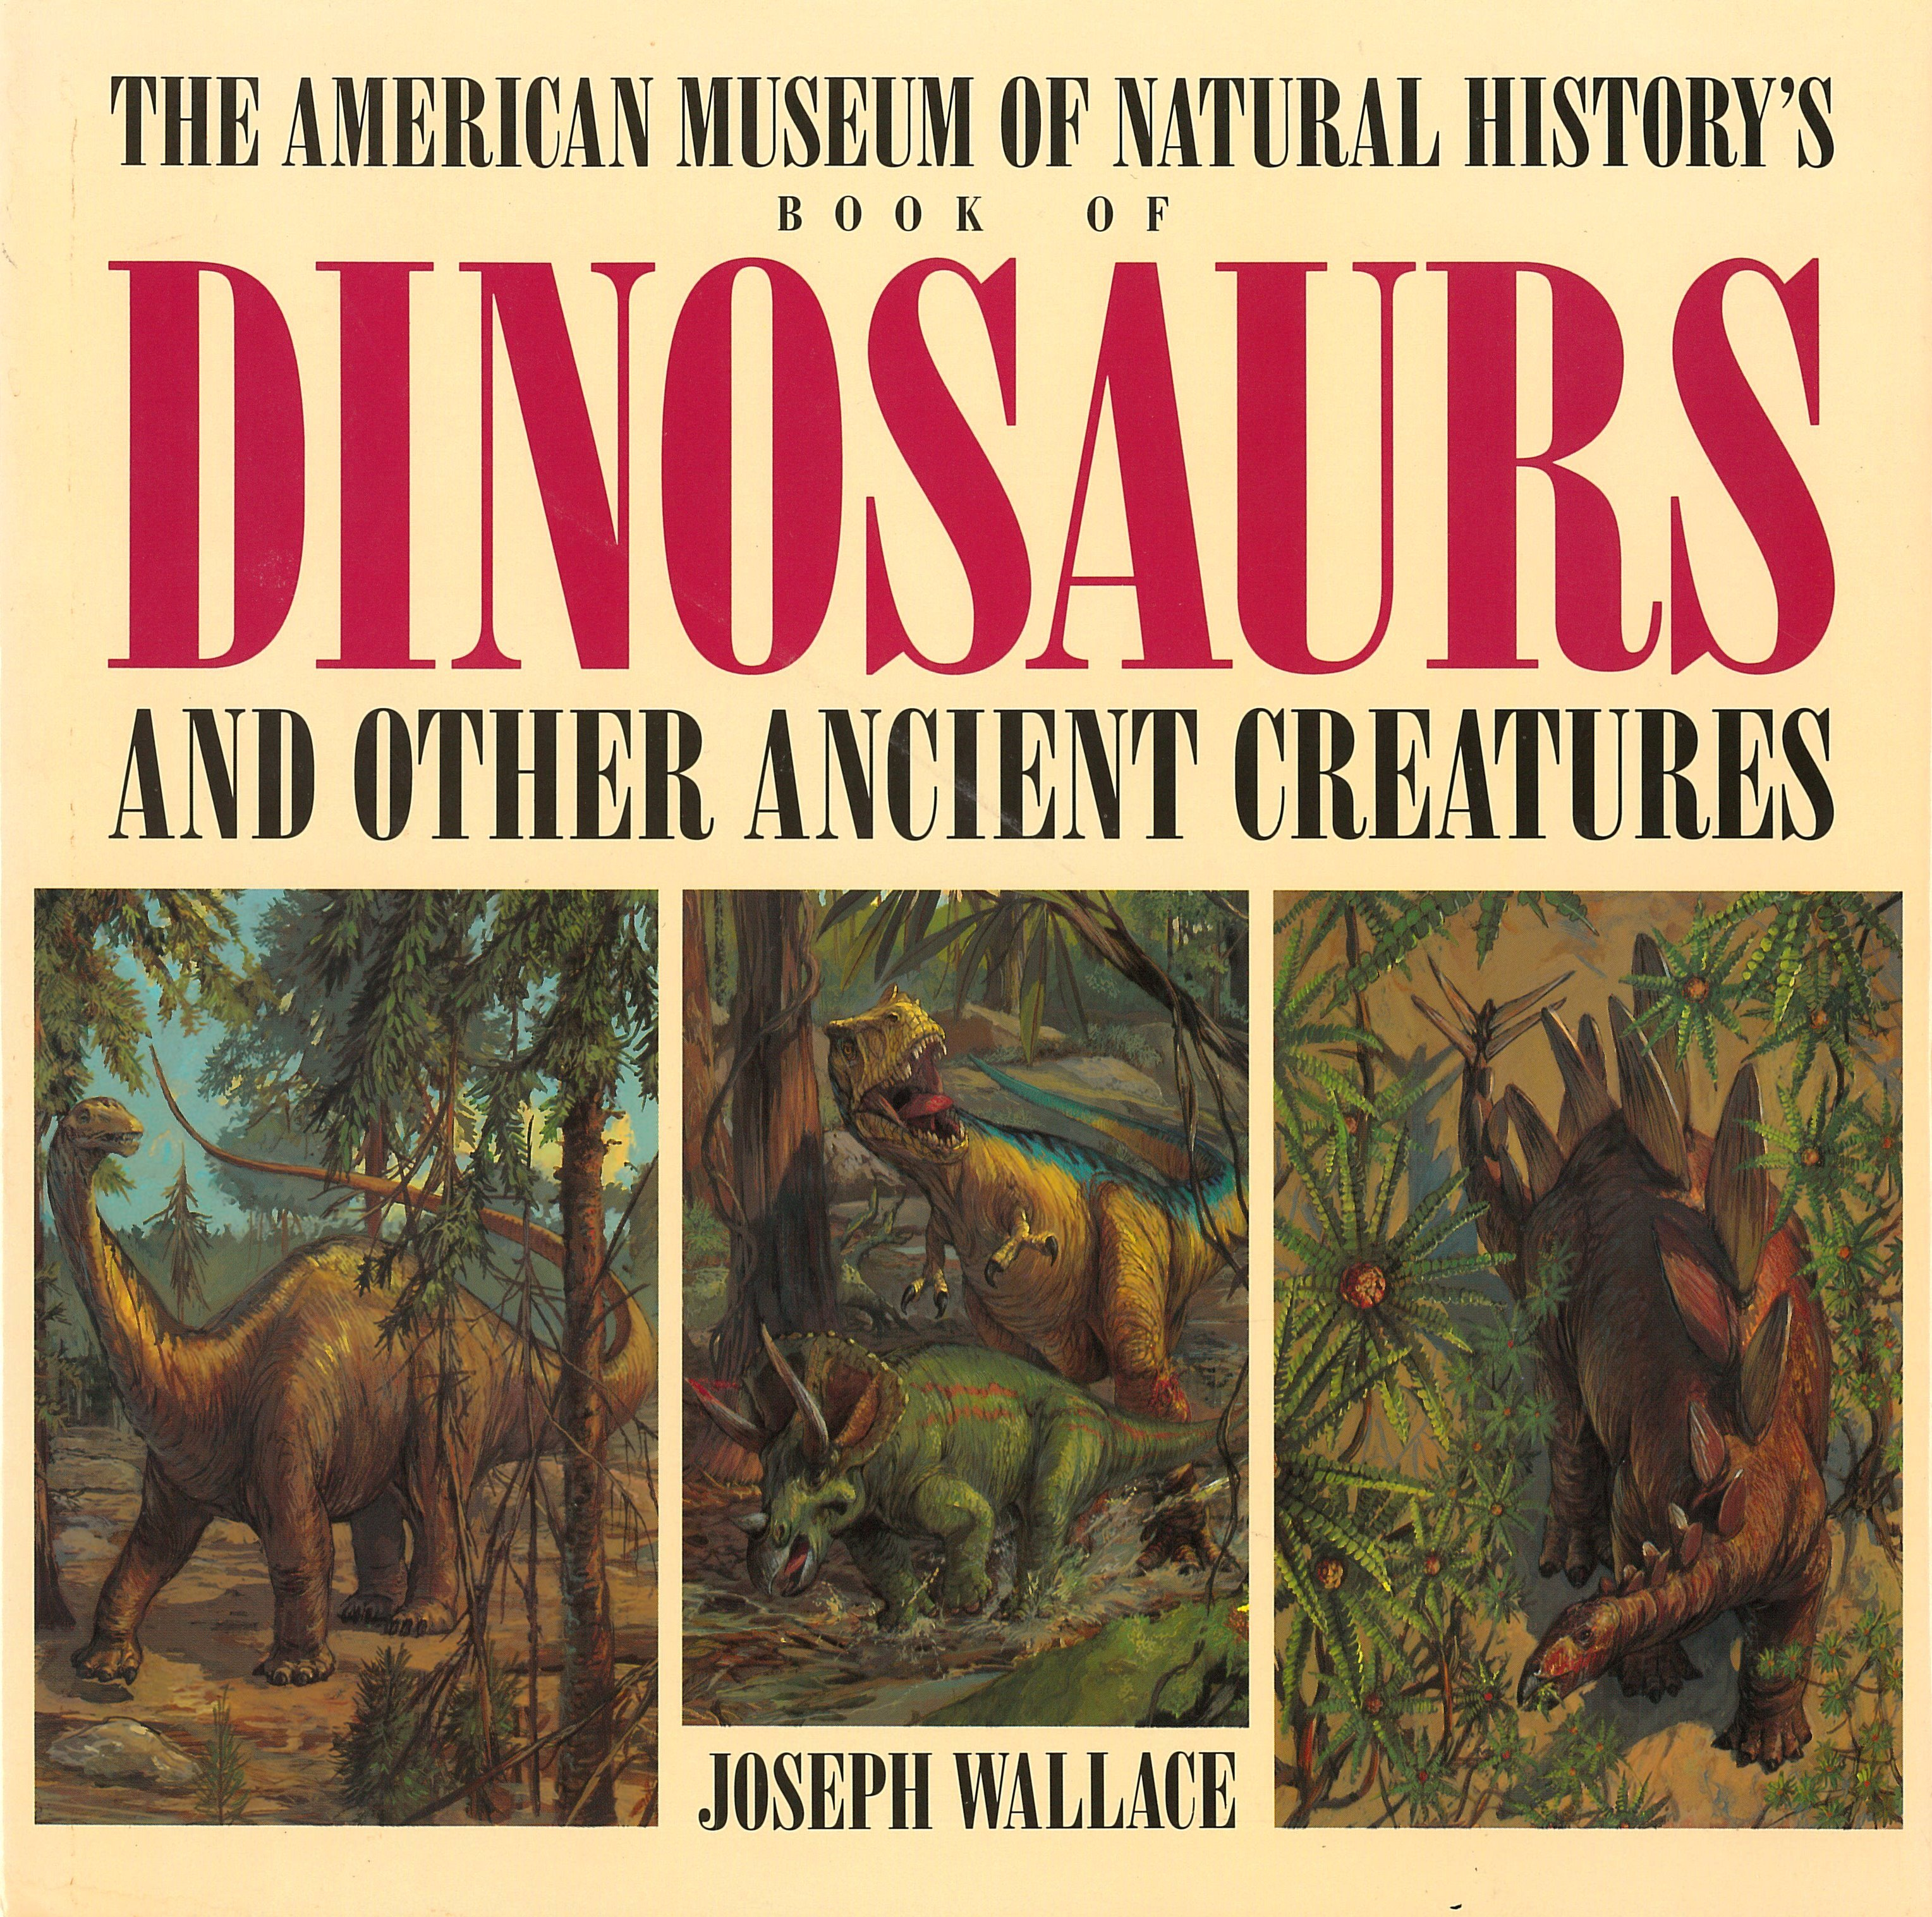 The American Museum Of Natural History's Book Of Dinosaurs And Other Ancient Creatures